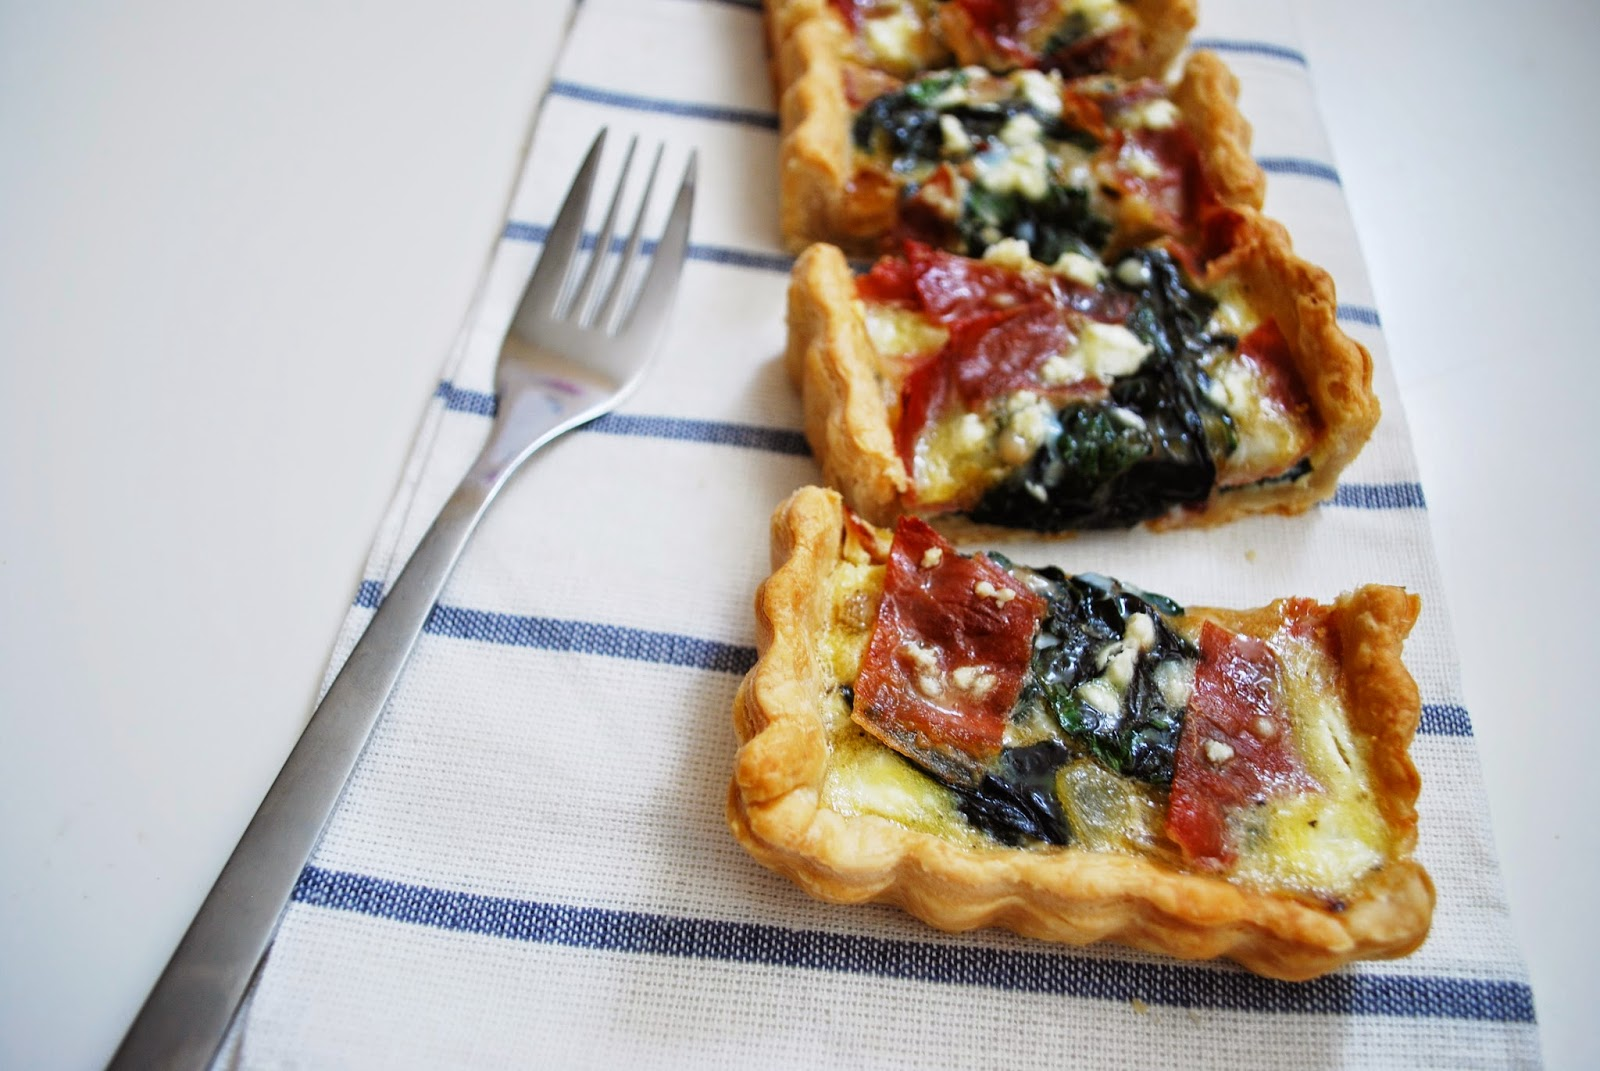 The Mavric: Proscuitto + Goat Cheese + Swiss Chard Quiche